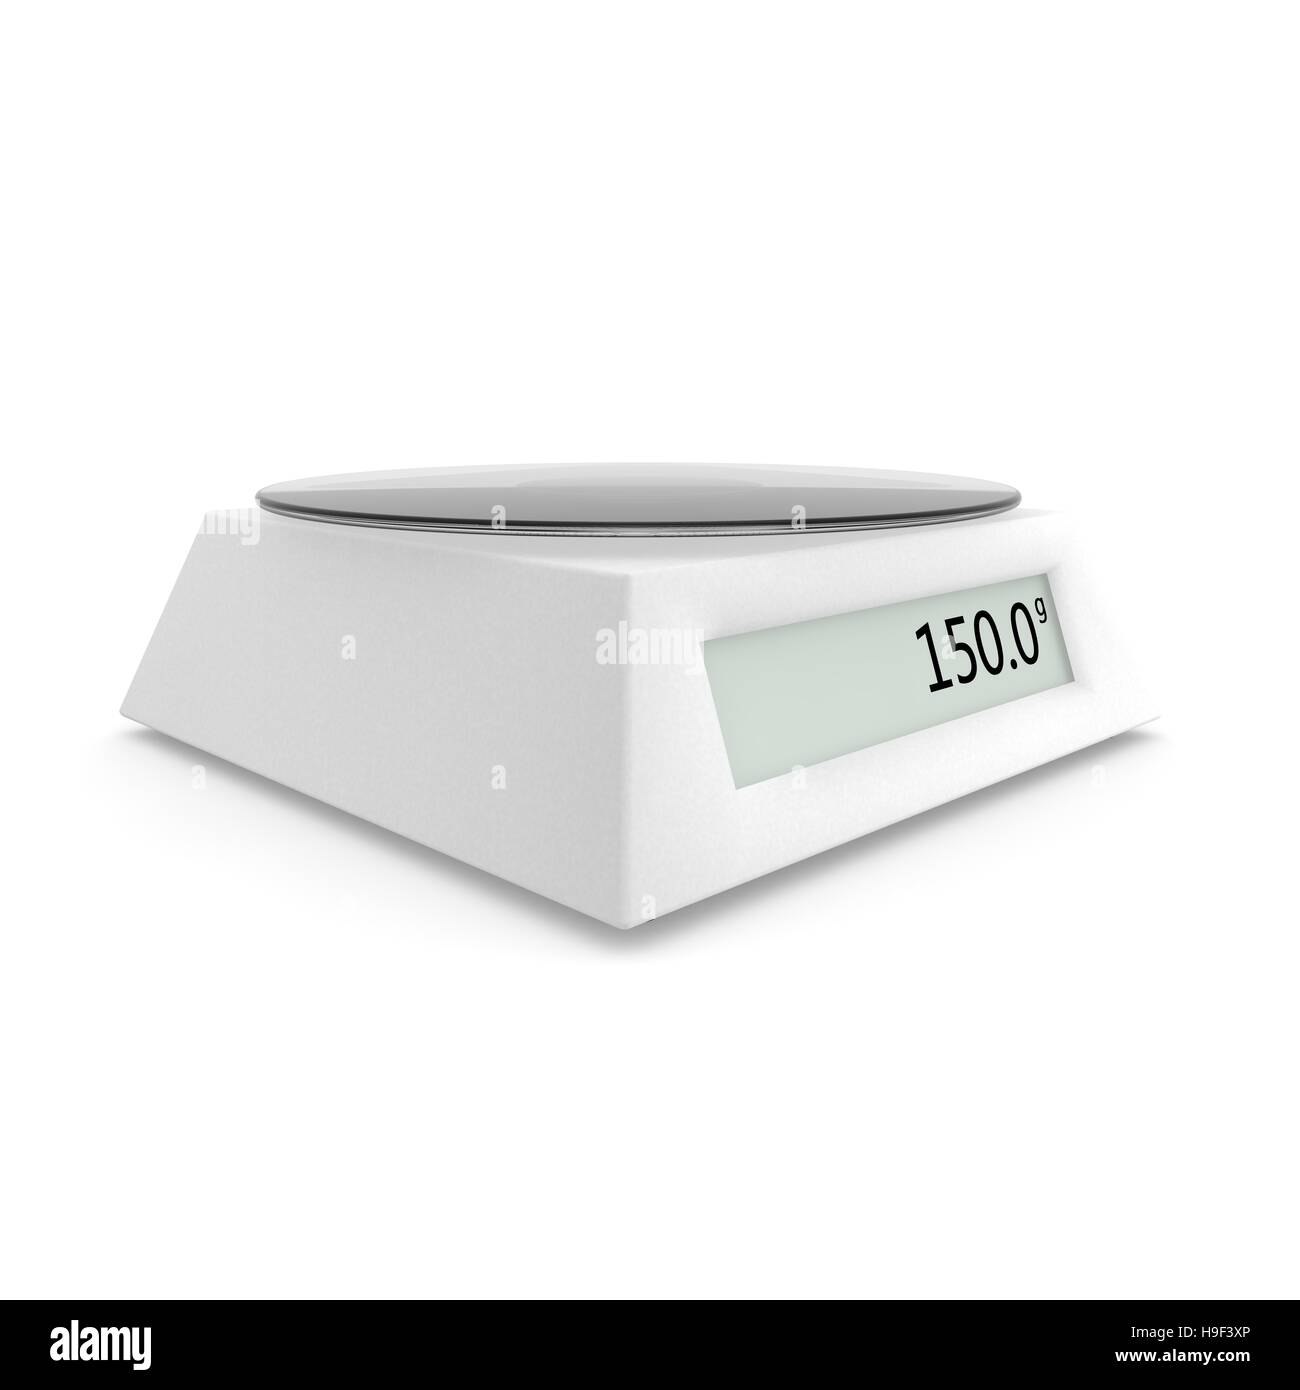 digital kitchen scale show 150 grams isolated white background 3d